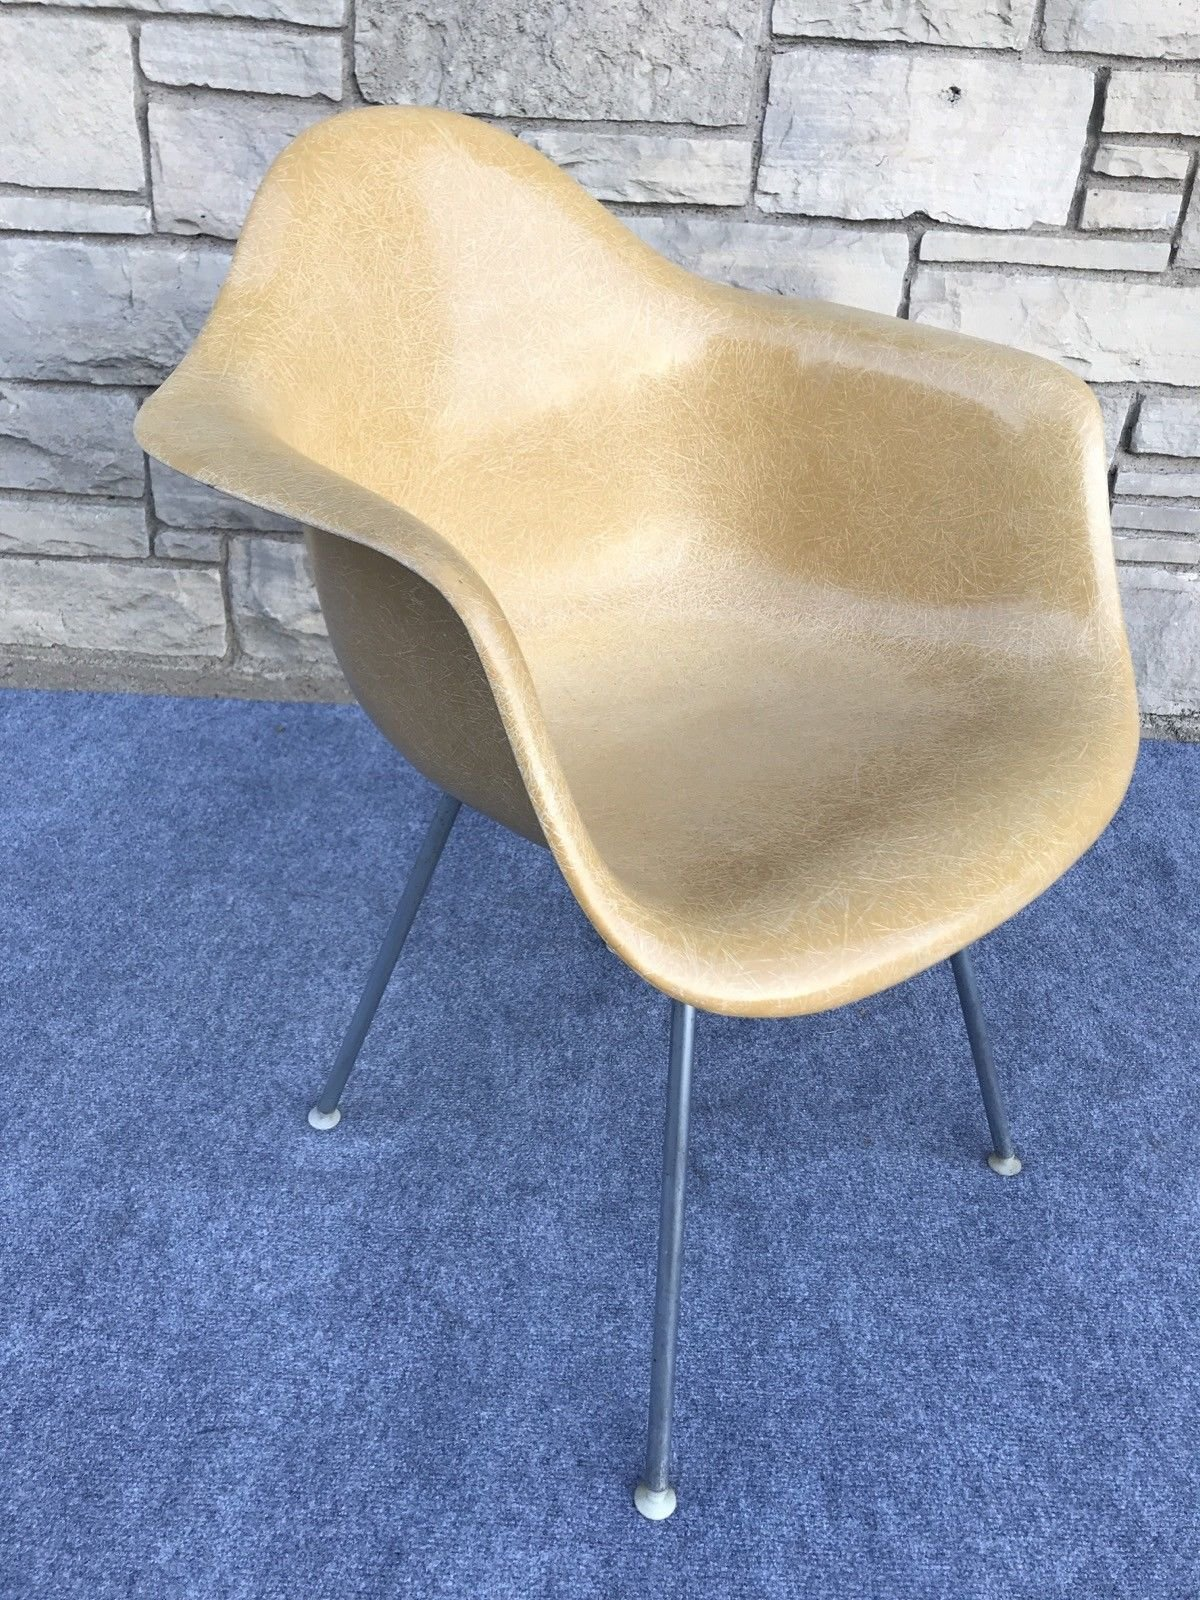 Eames Chair Herman Miller Ebay Photo 3 Of 8 In 8 Marvelous Midcentury Chairs On Ebay Dwell